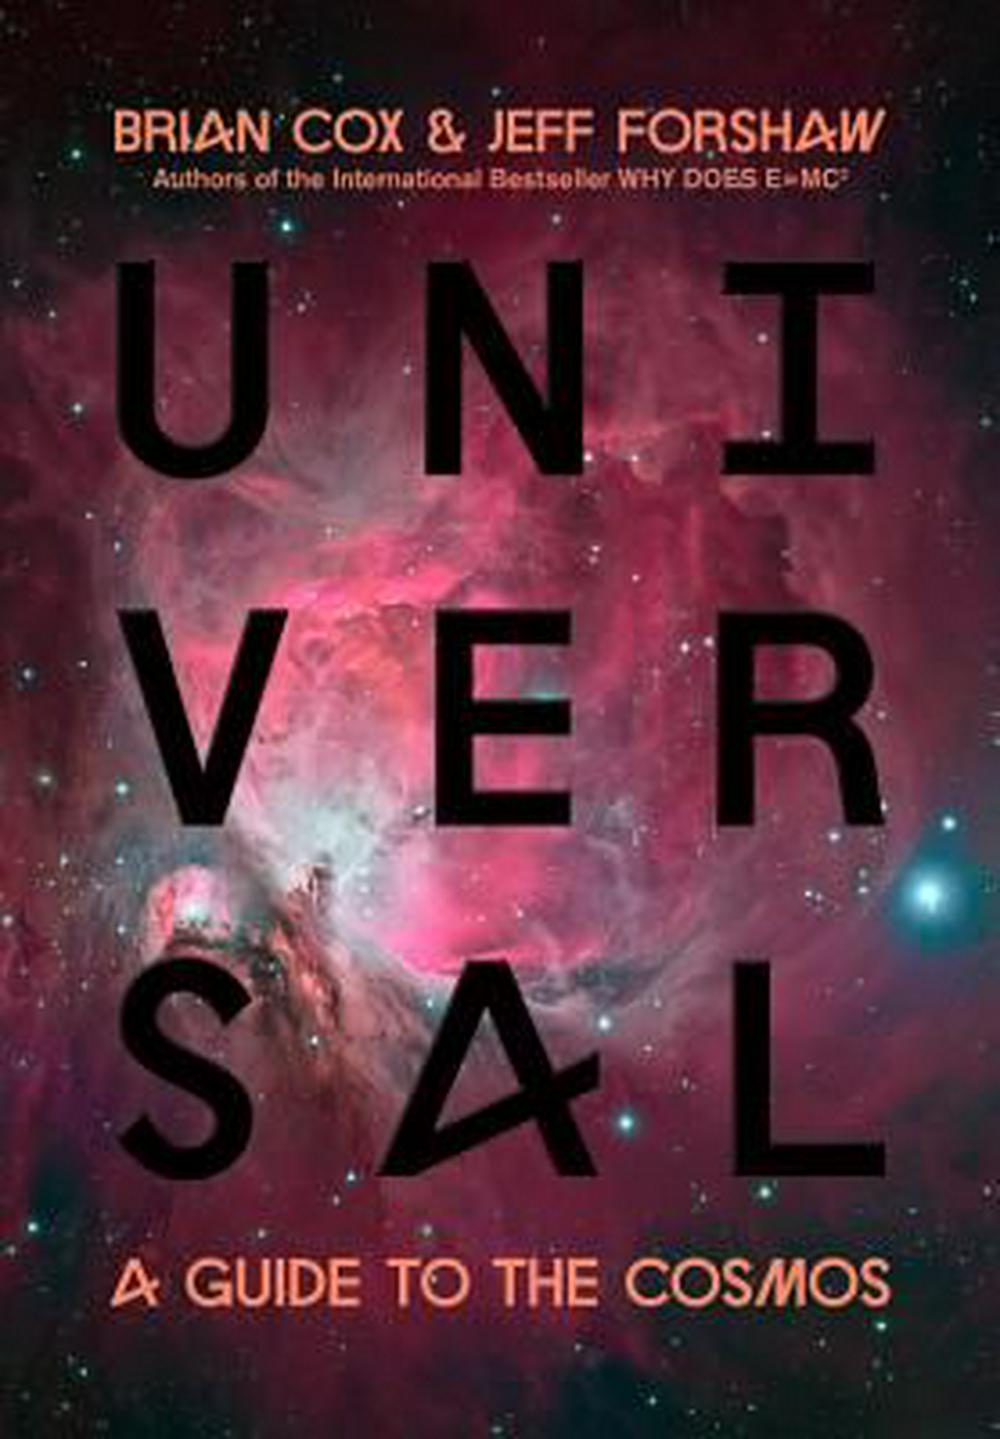 Universal by Brian Cox, Jeff Forshaw, ISBN: 9780306822704